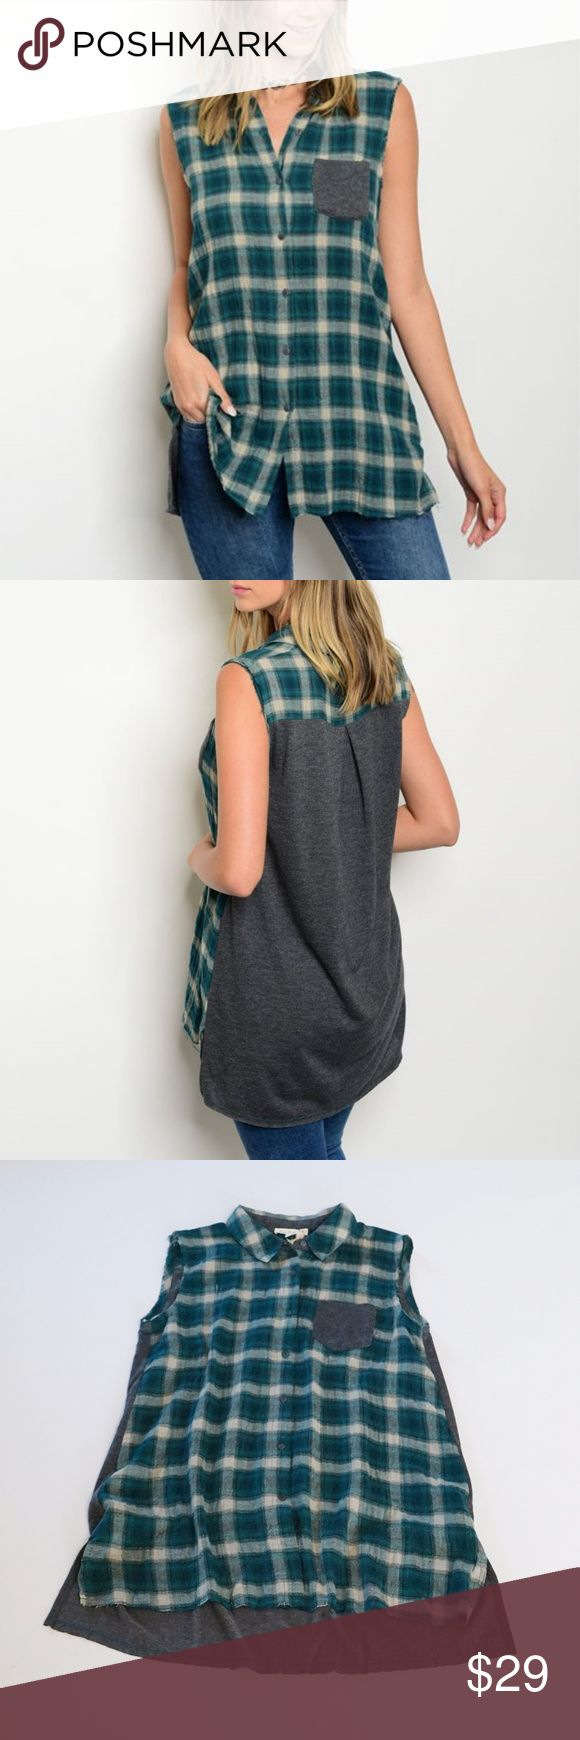 Plaid Flannel Tunic Top Button Front Grunge 90's Sleeveless Plaid Flannel Tartan Tunic Top Button Front Grunge 90's Green Gray   Features:  100% cotton: self contrast: poly/rayon 65/35 button front lightweight frayed edging hi low hem chest pocket hand wash or dry clean  Measurements, laying flat in inches:  Bust:  17 (S), 18 (M), 19.5 (L)  Length: 27, 28, 29; 2-3 inches longer in back Tops